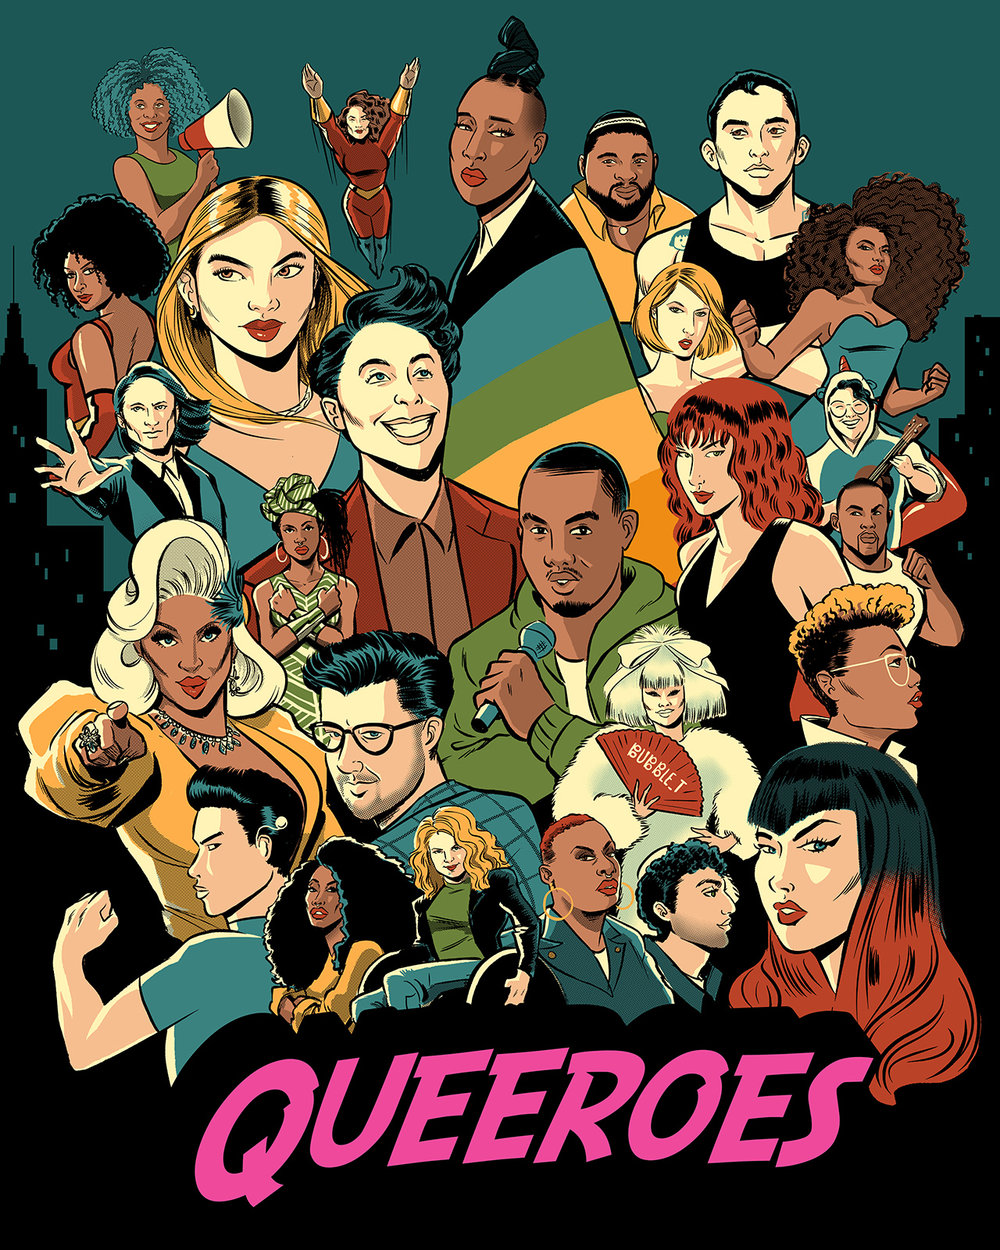 queeroes v4 web.jpg